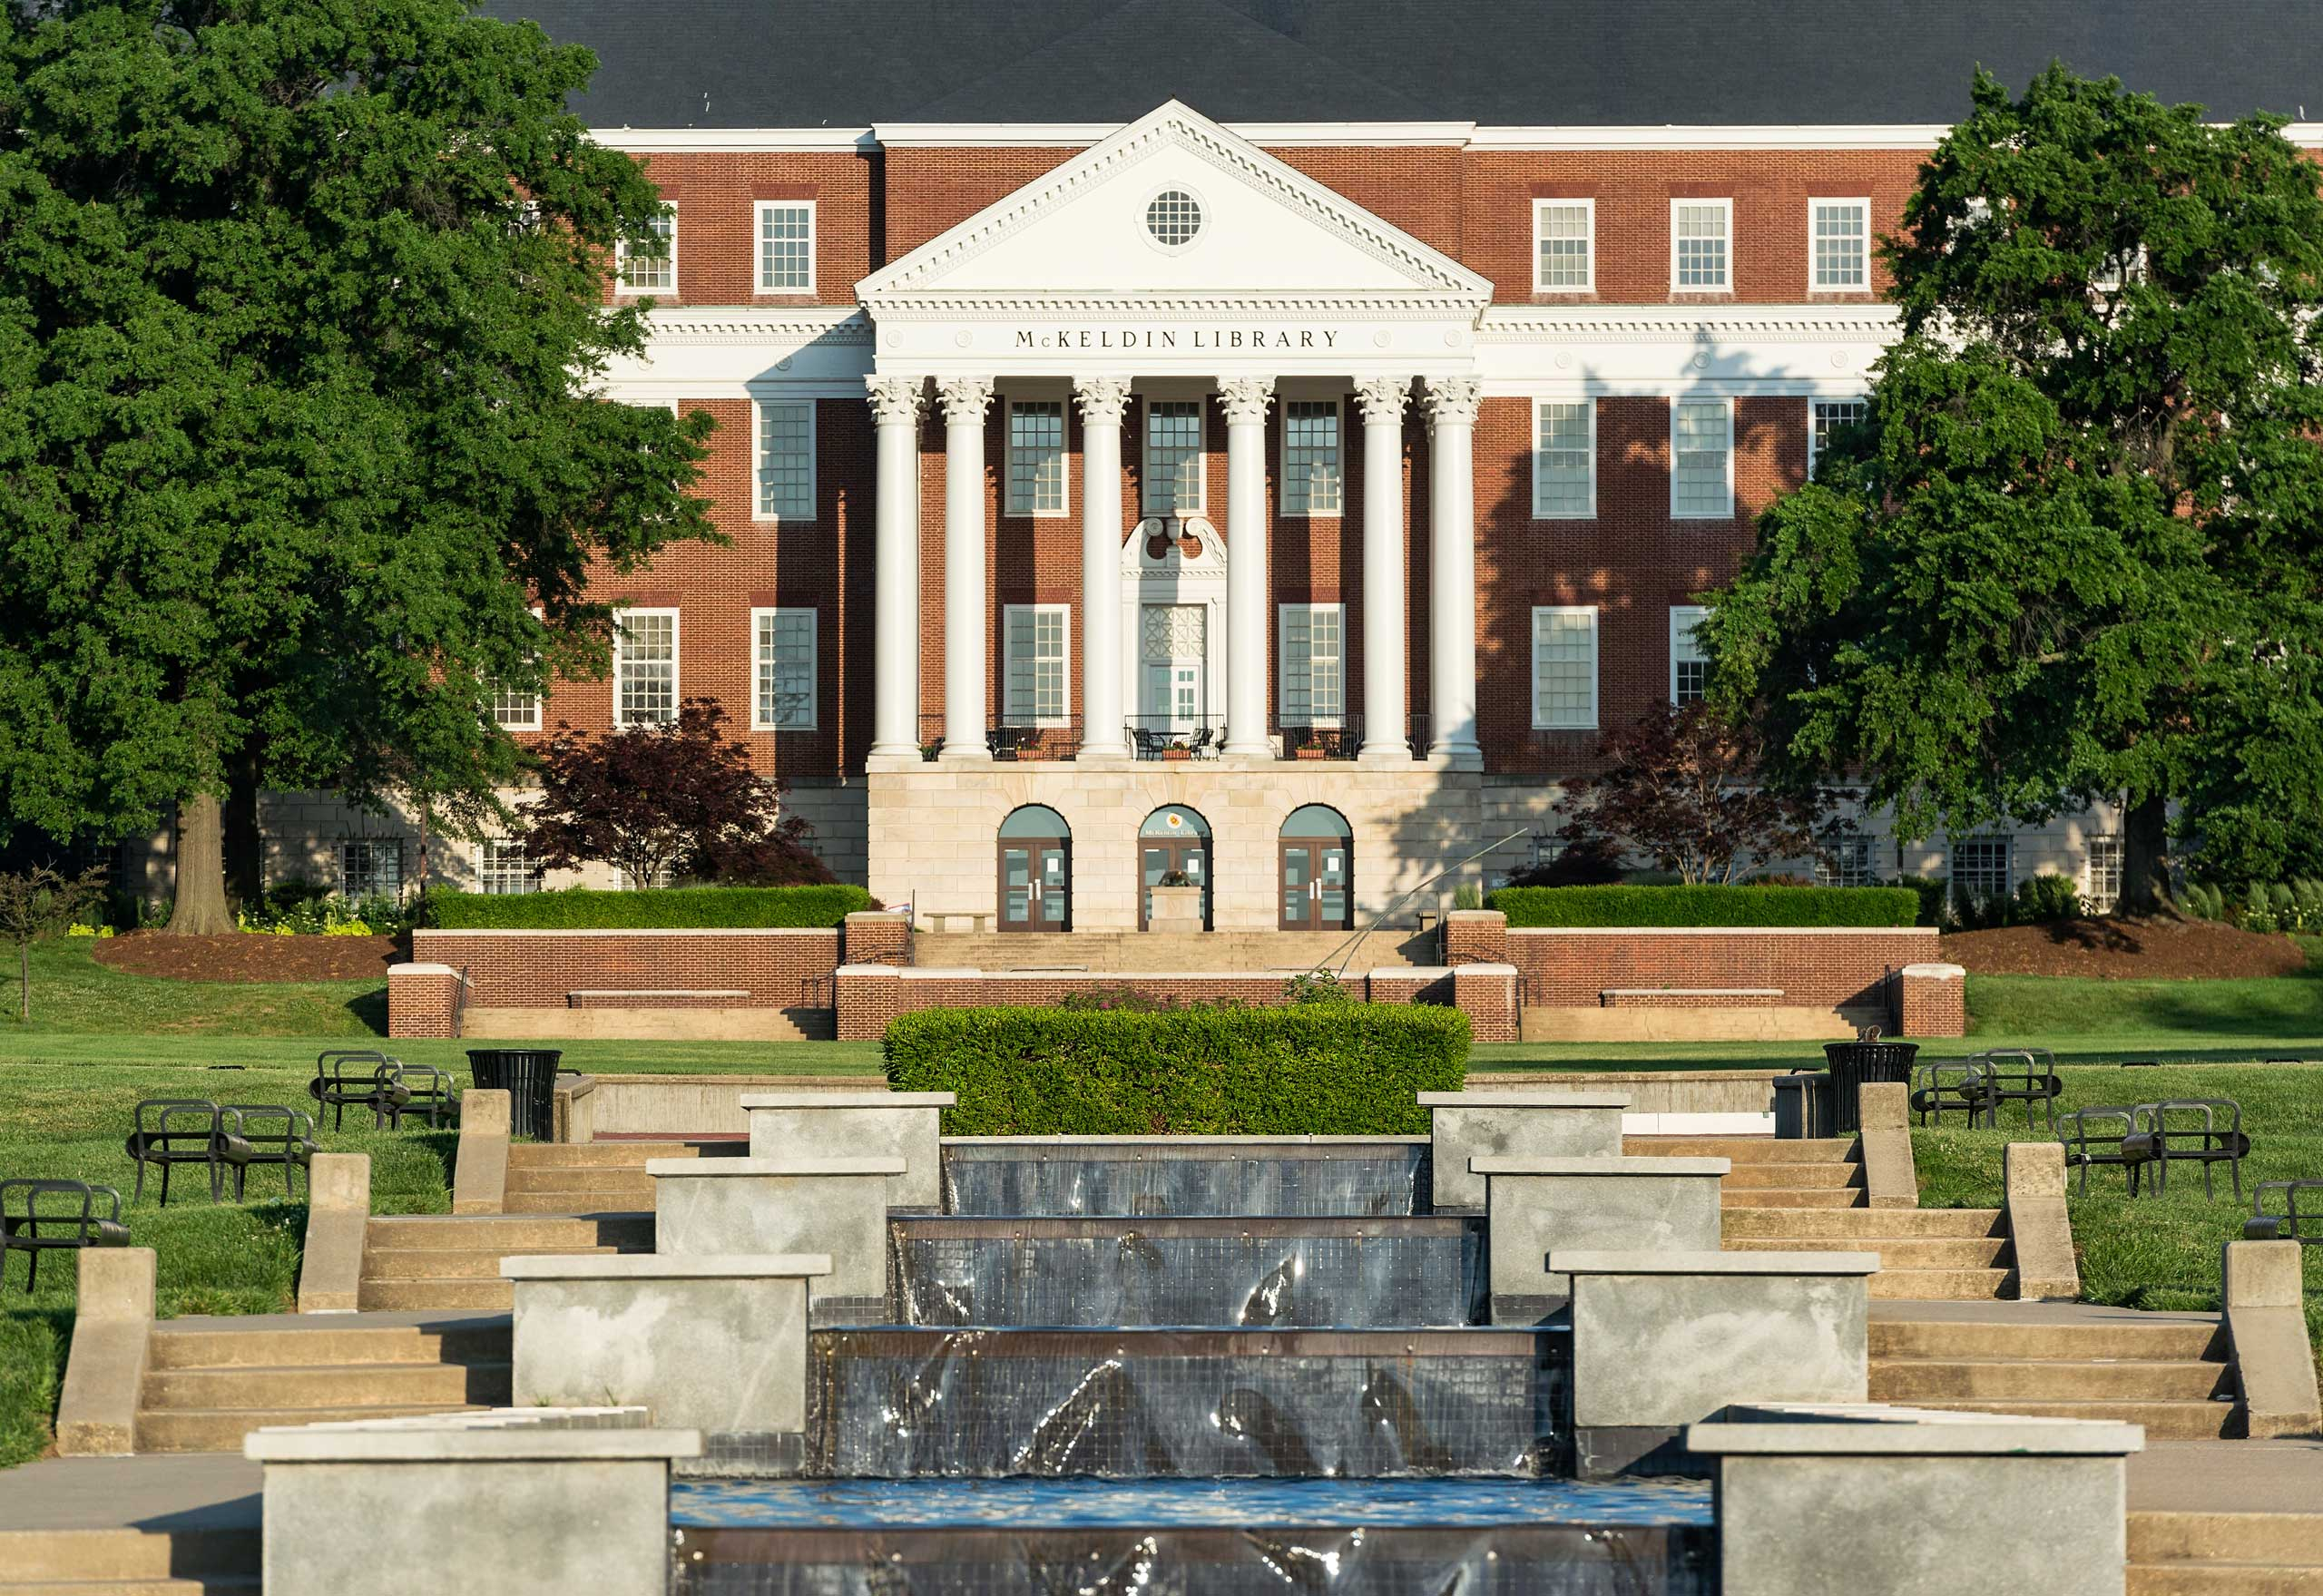 University of Maryland Fraternity Member Sends Racist, Sexist Email